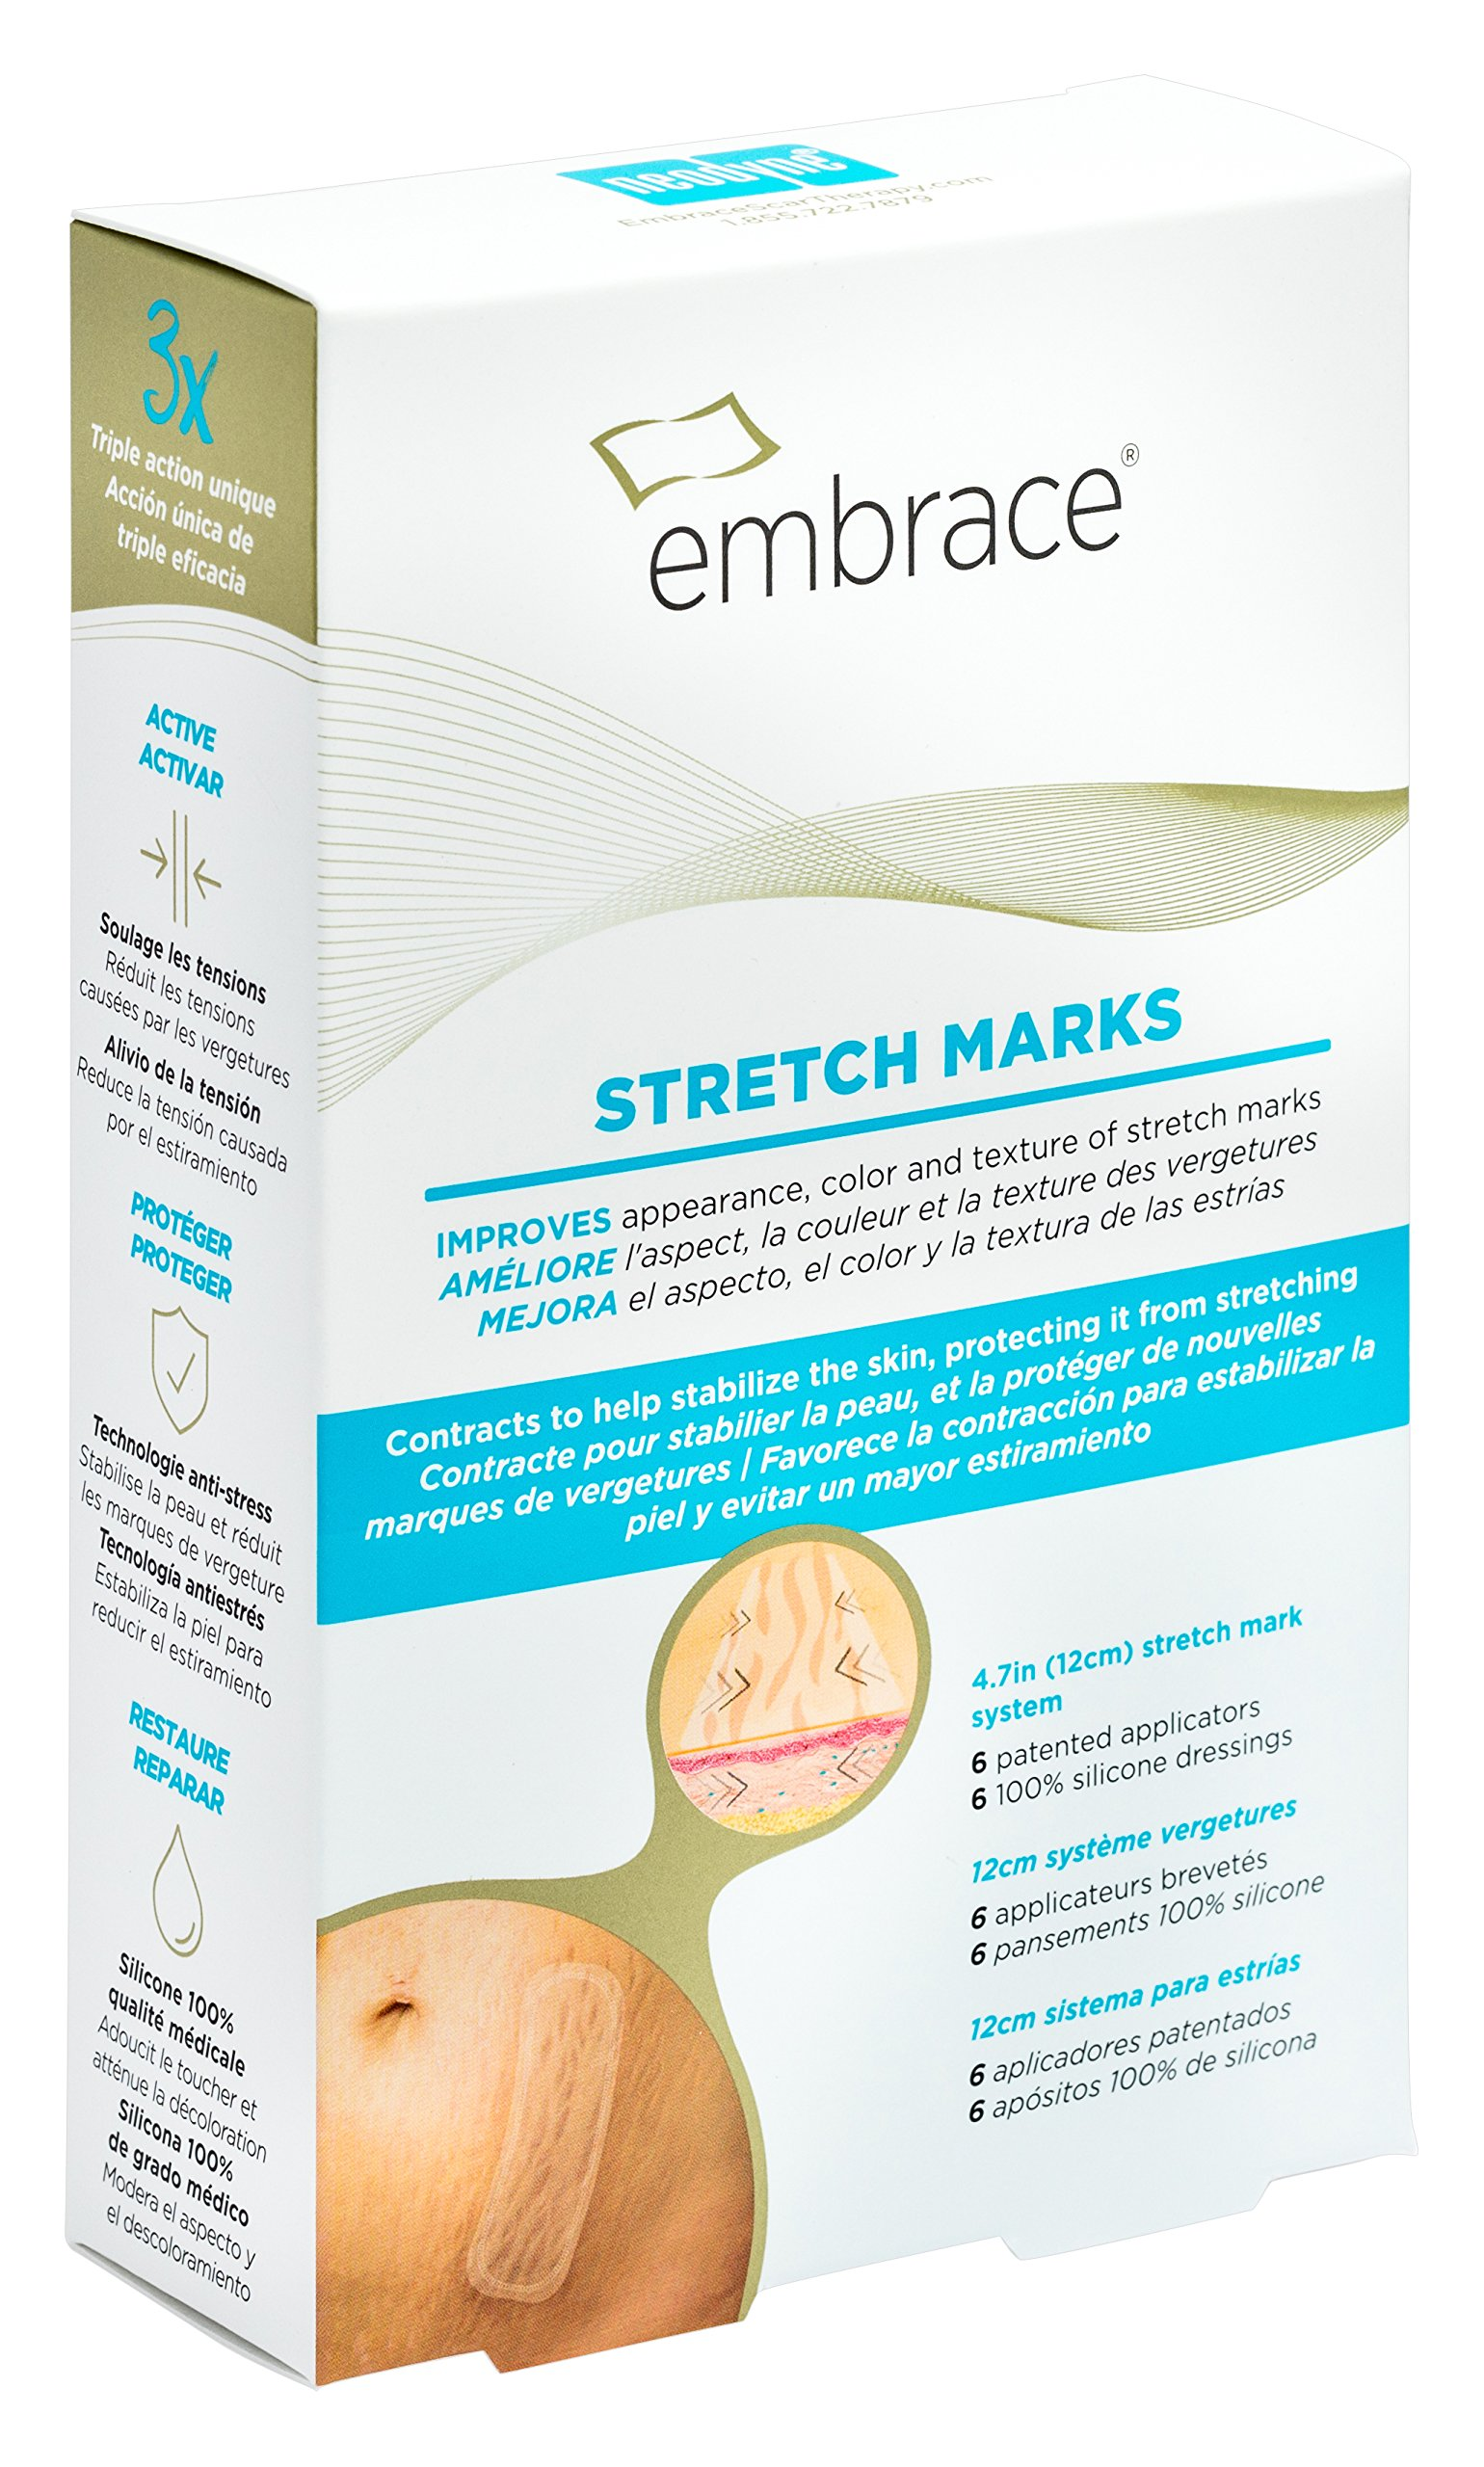 Embrace Stretch Marks Scar Treatment, Silicone Sheets for Red and Pink Stretch Marks, Large 4.7 inch Sheets, 6 Count (60 Day Supply)